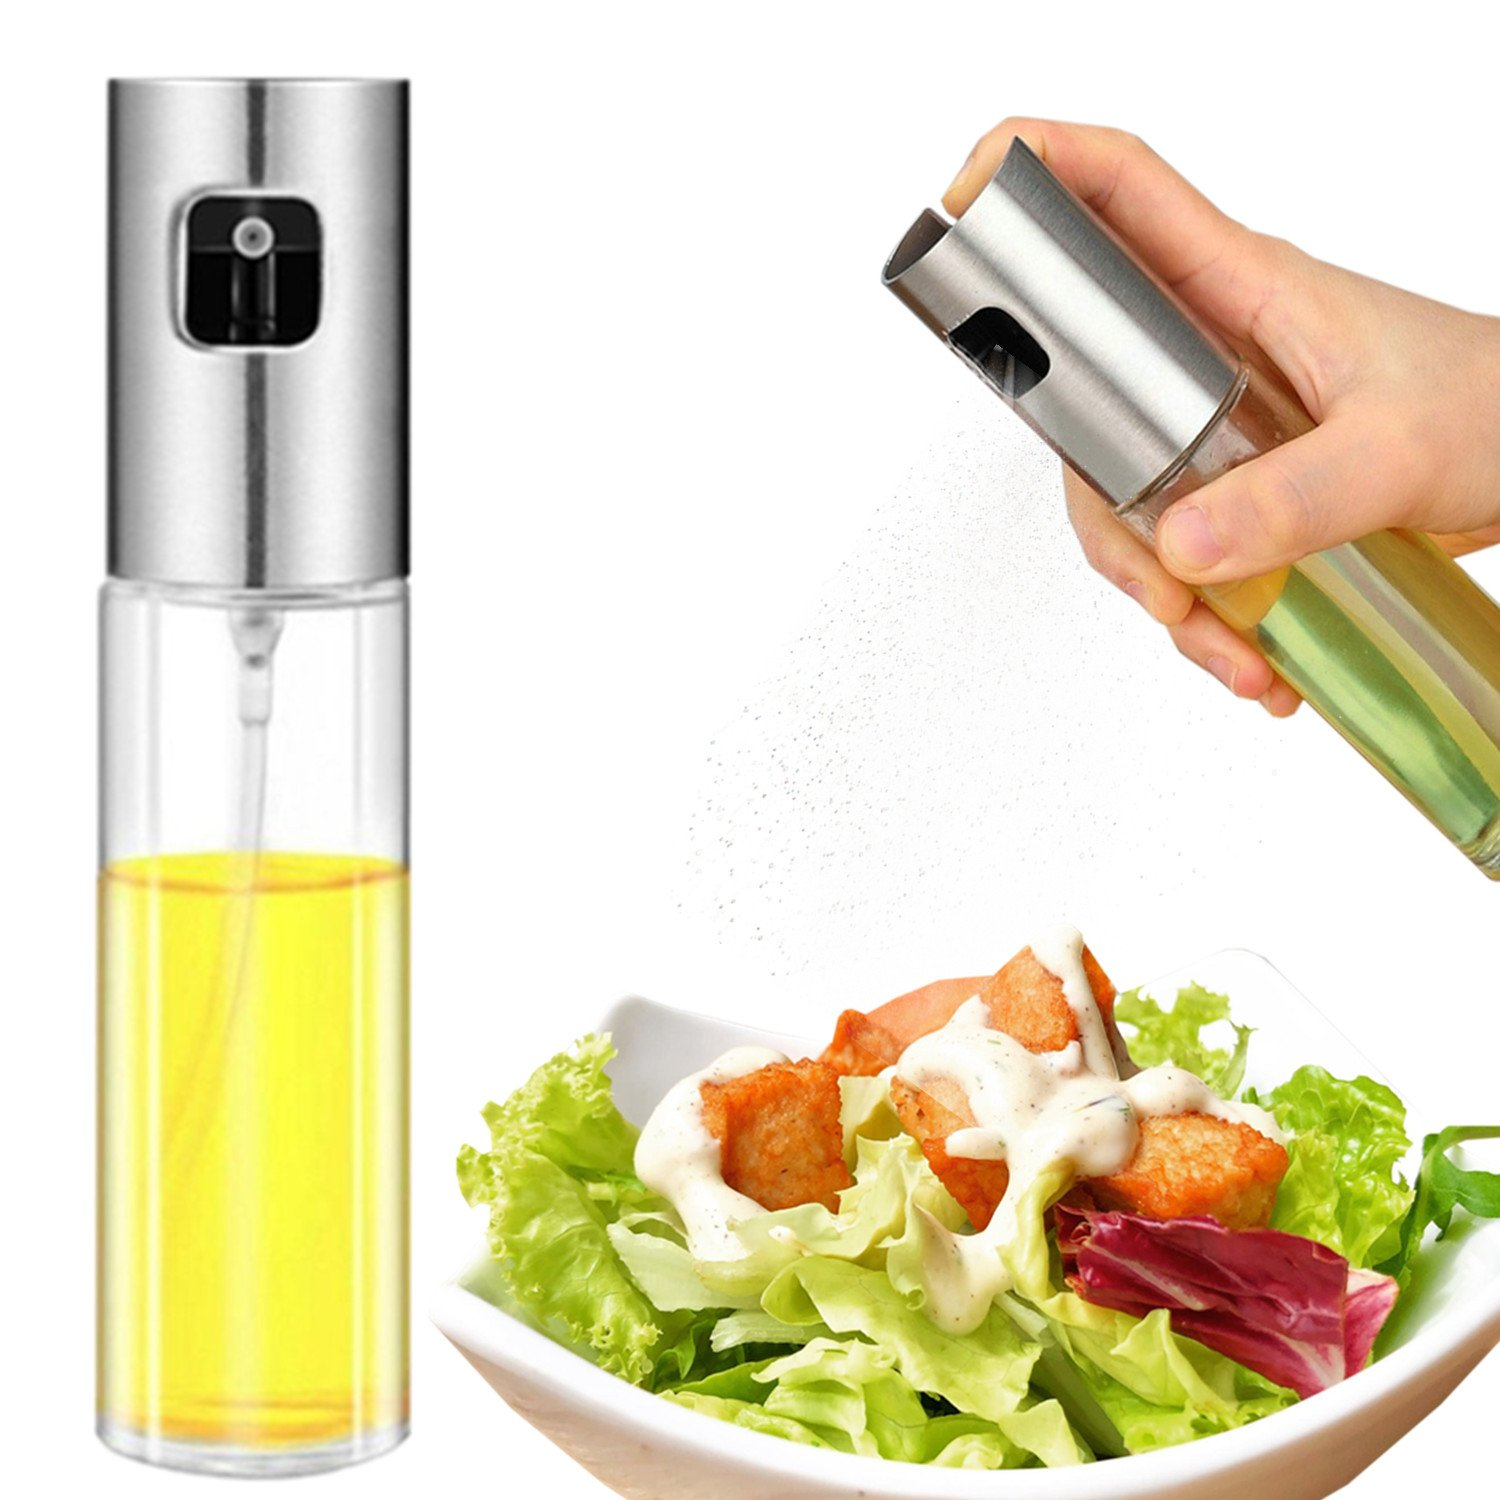 Olive Oil Sprayer, Food-grade Glass Oil Spray Bottle Oil Misters Vinegar Bottle Oil Dispenser for Cooking, Salad, BBQ, Kitchen Baking, Roasting, 3.42-ounce Capacity